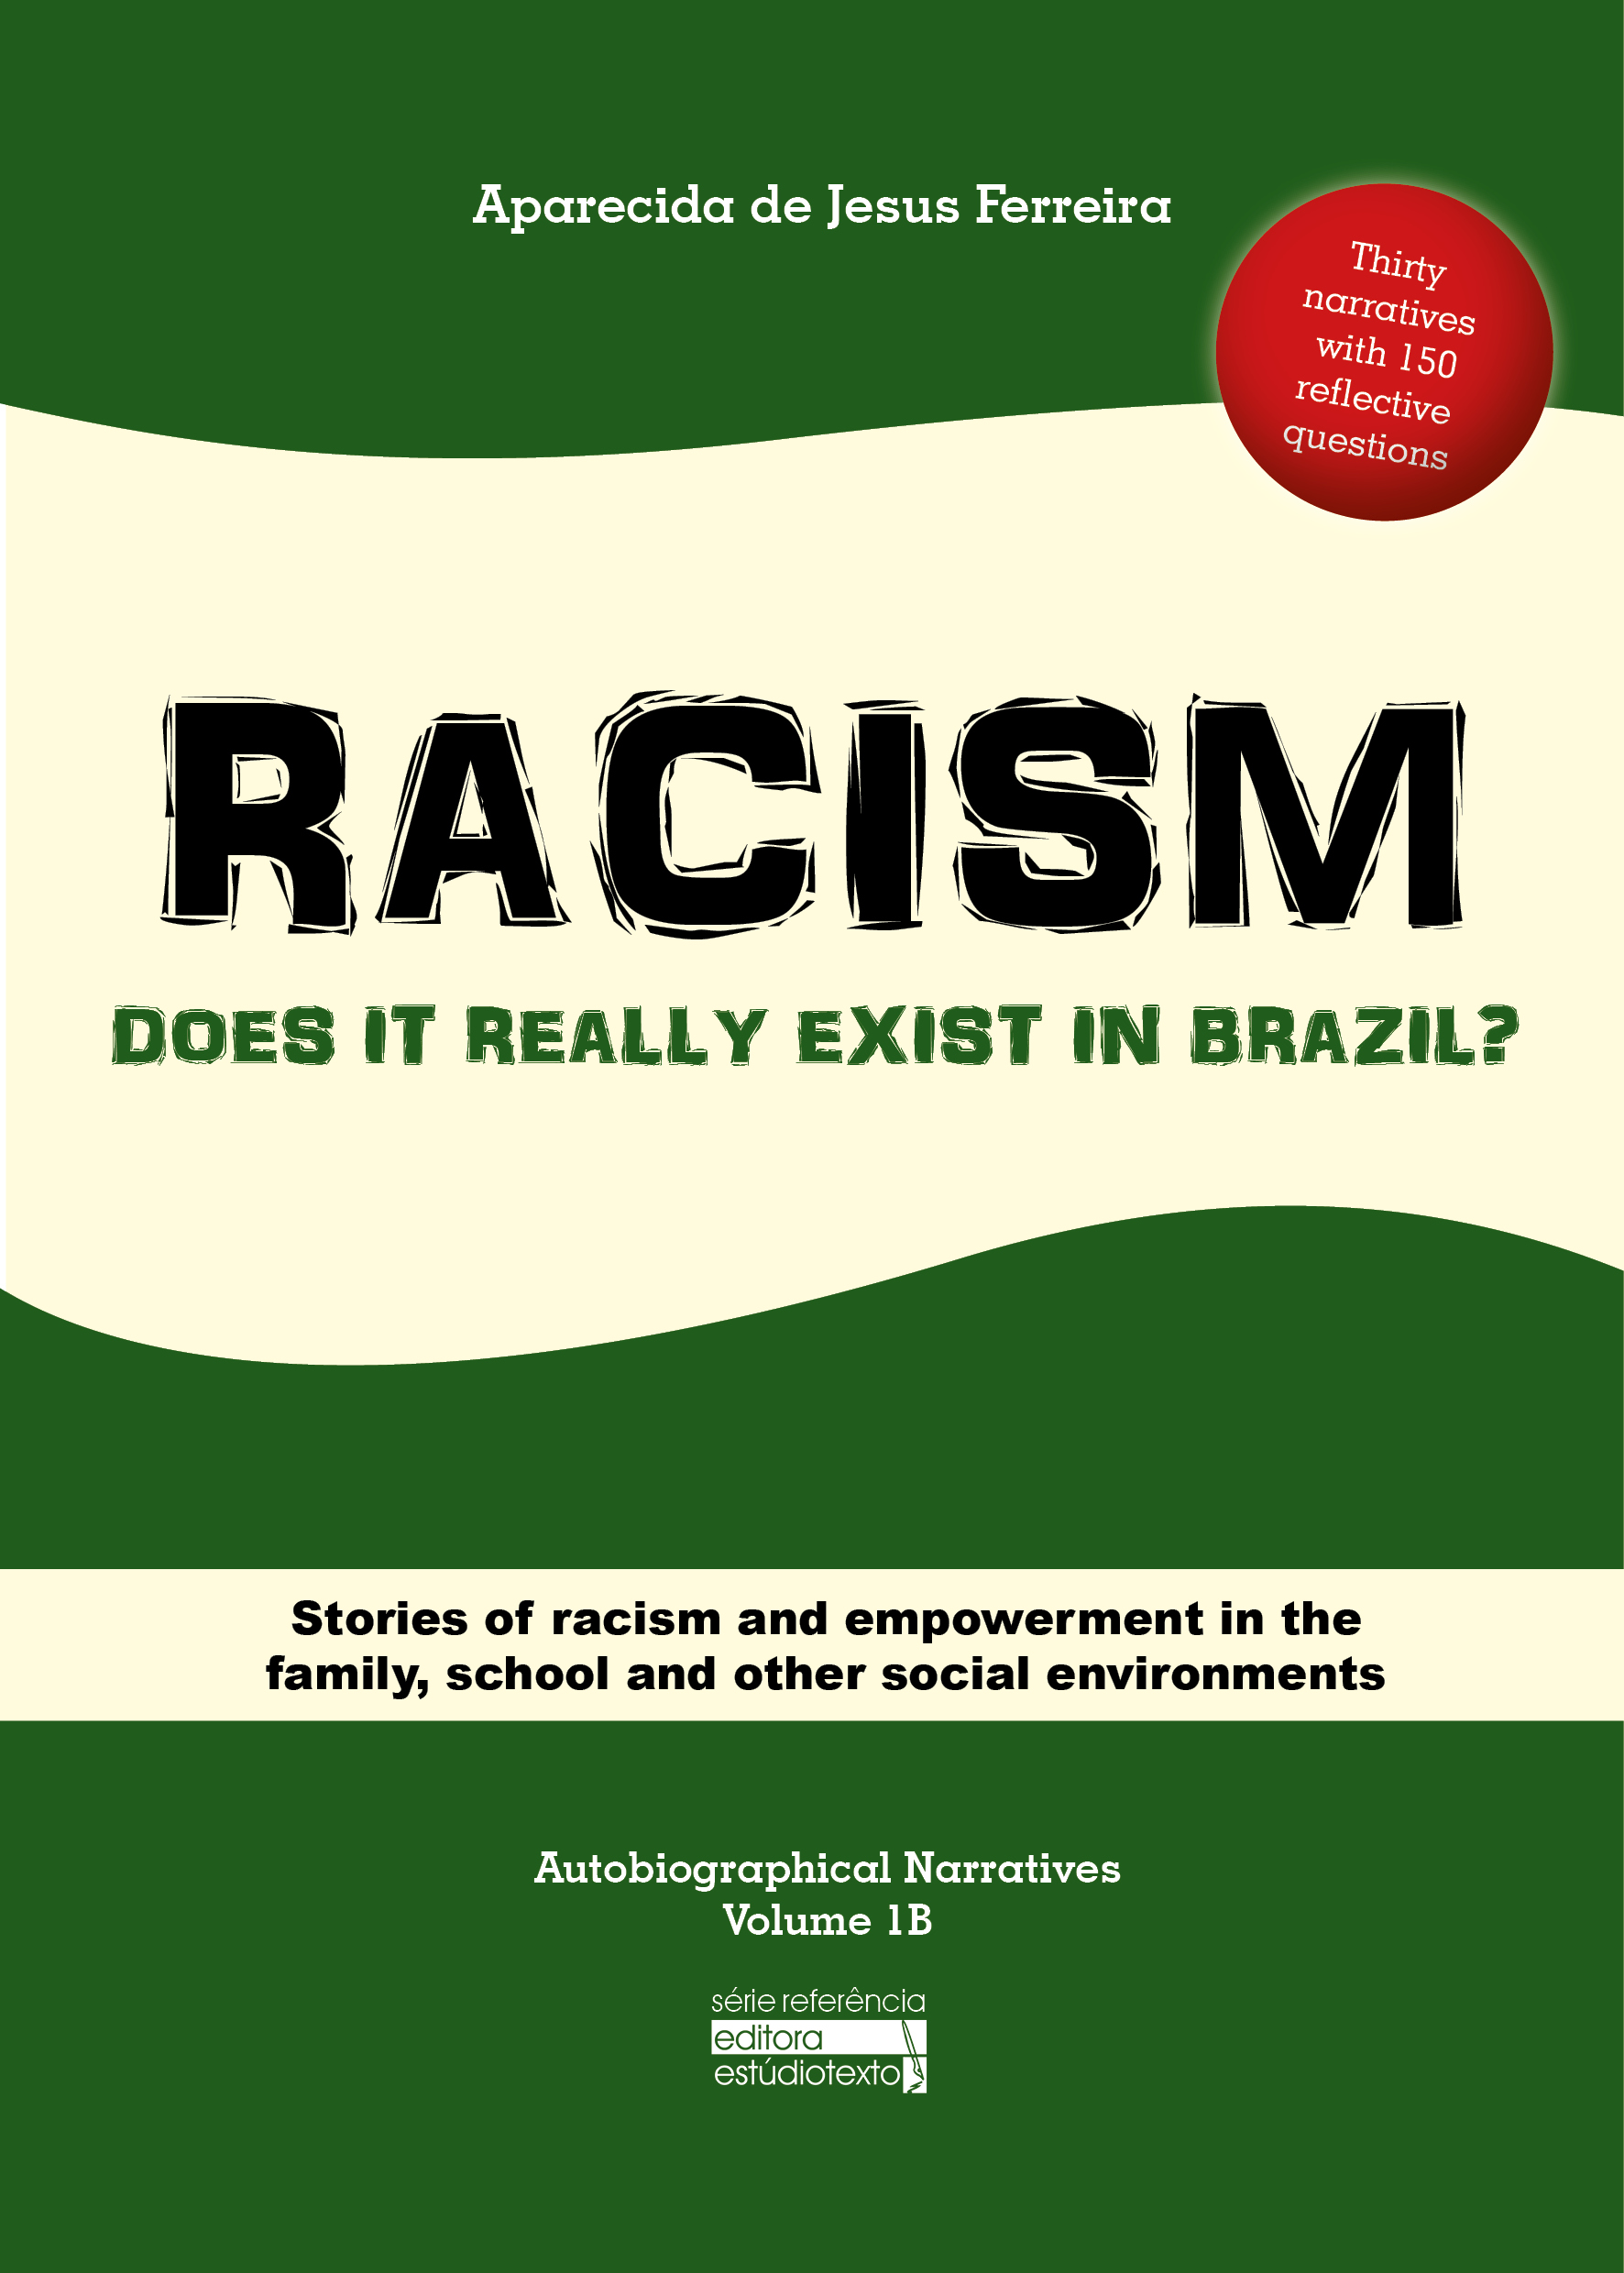 2017 Racism: Does it really existi in Brazil?